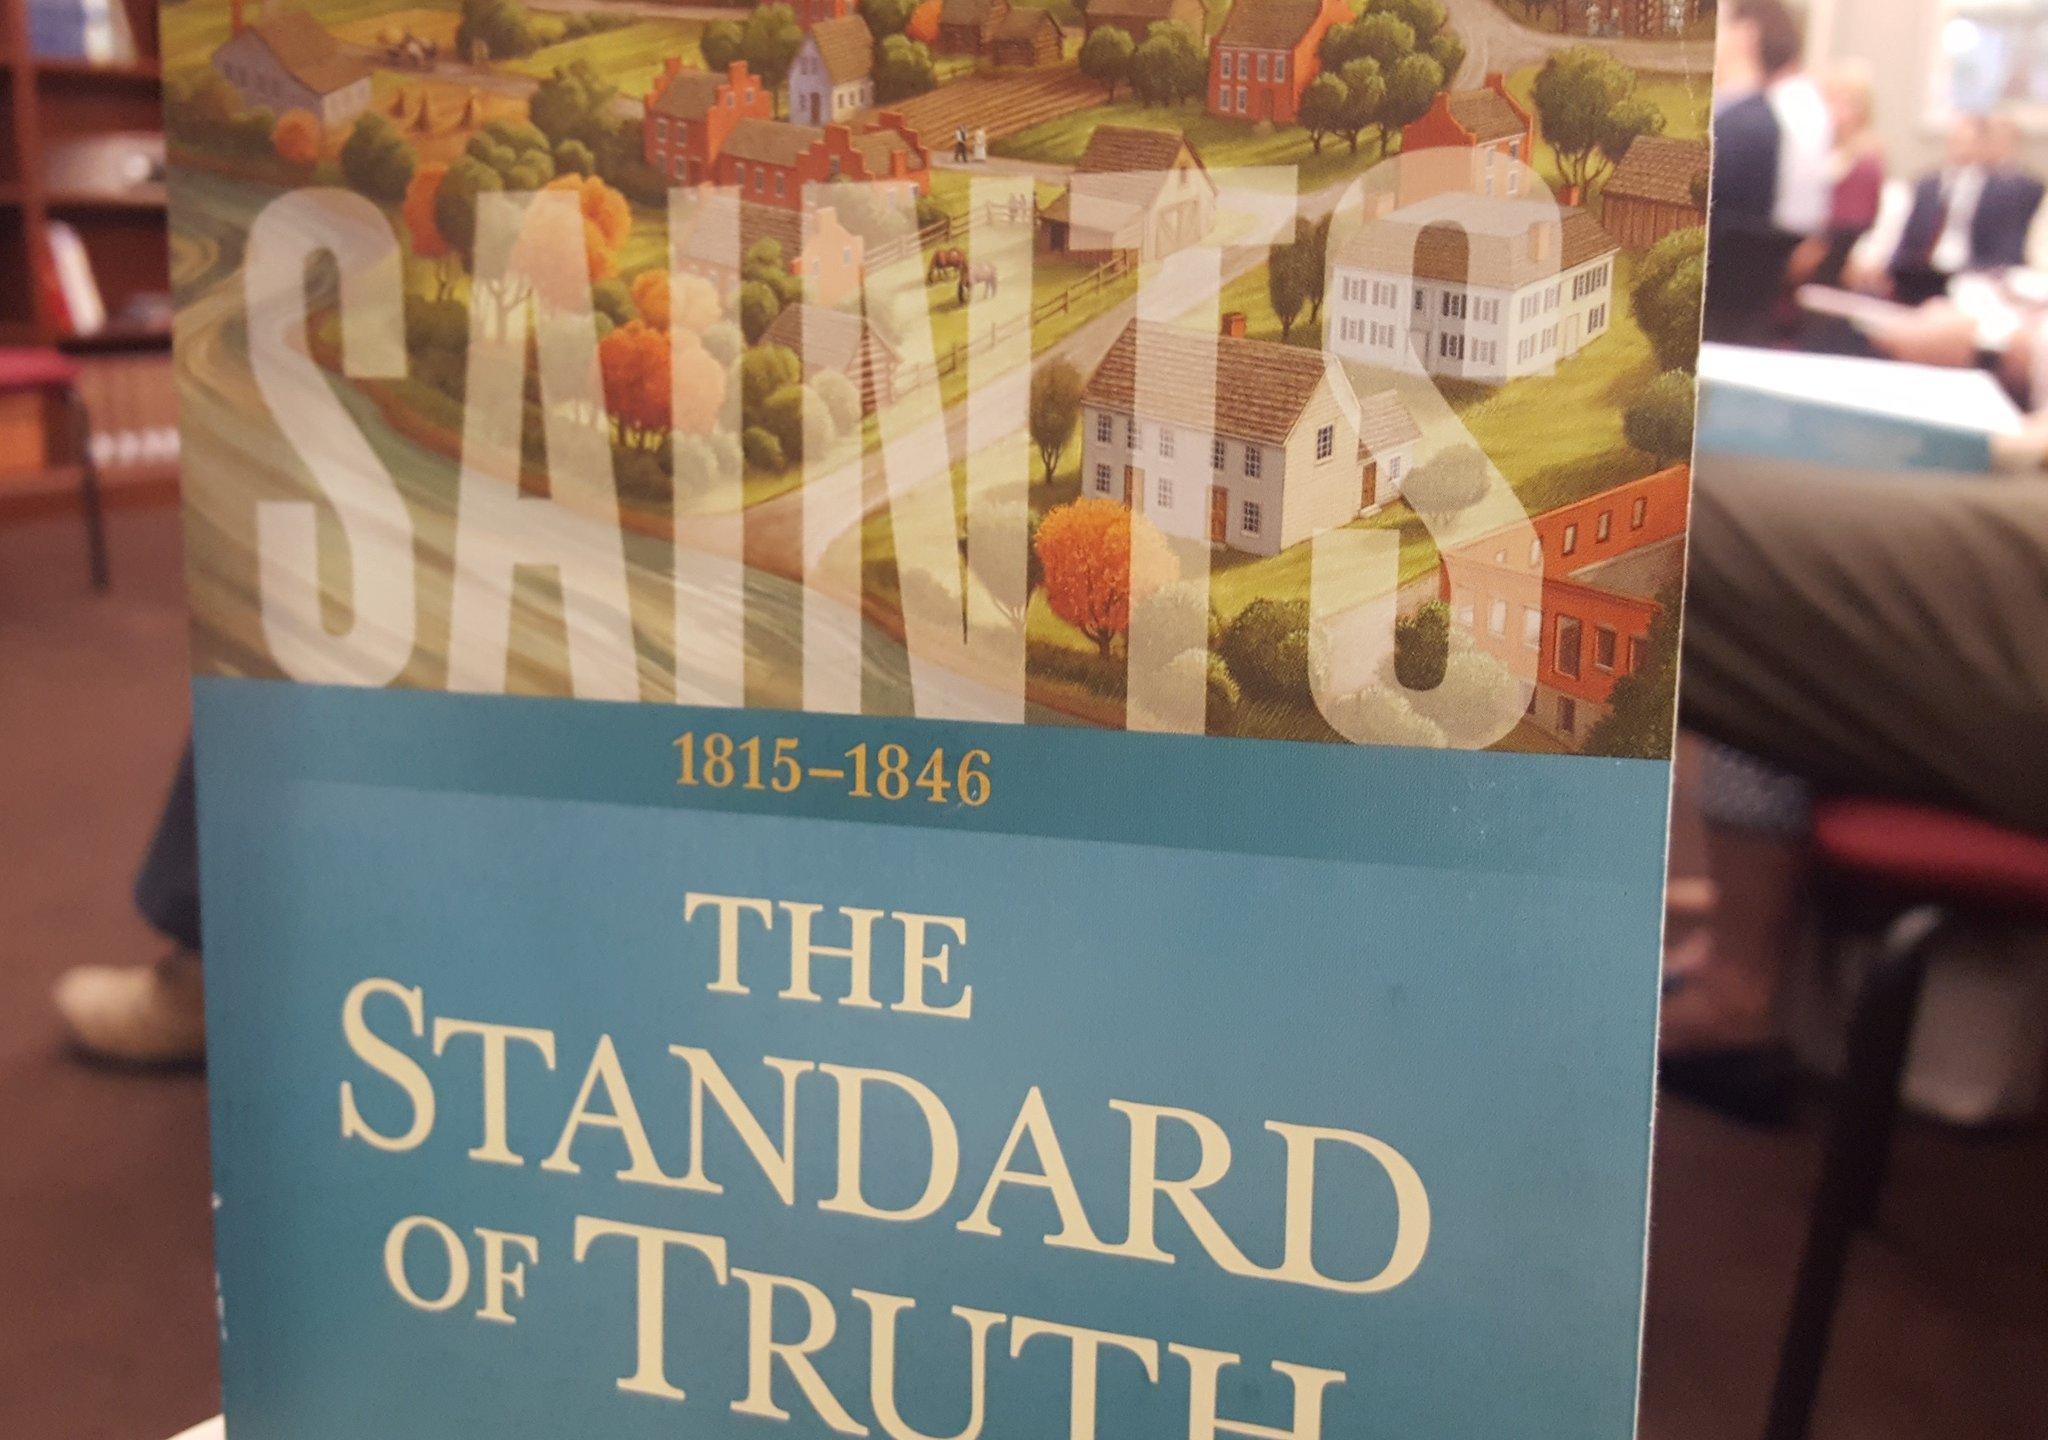 The Church of Jesus Christ of Latter-day Saints releases new